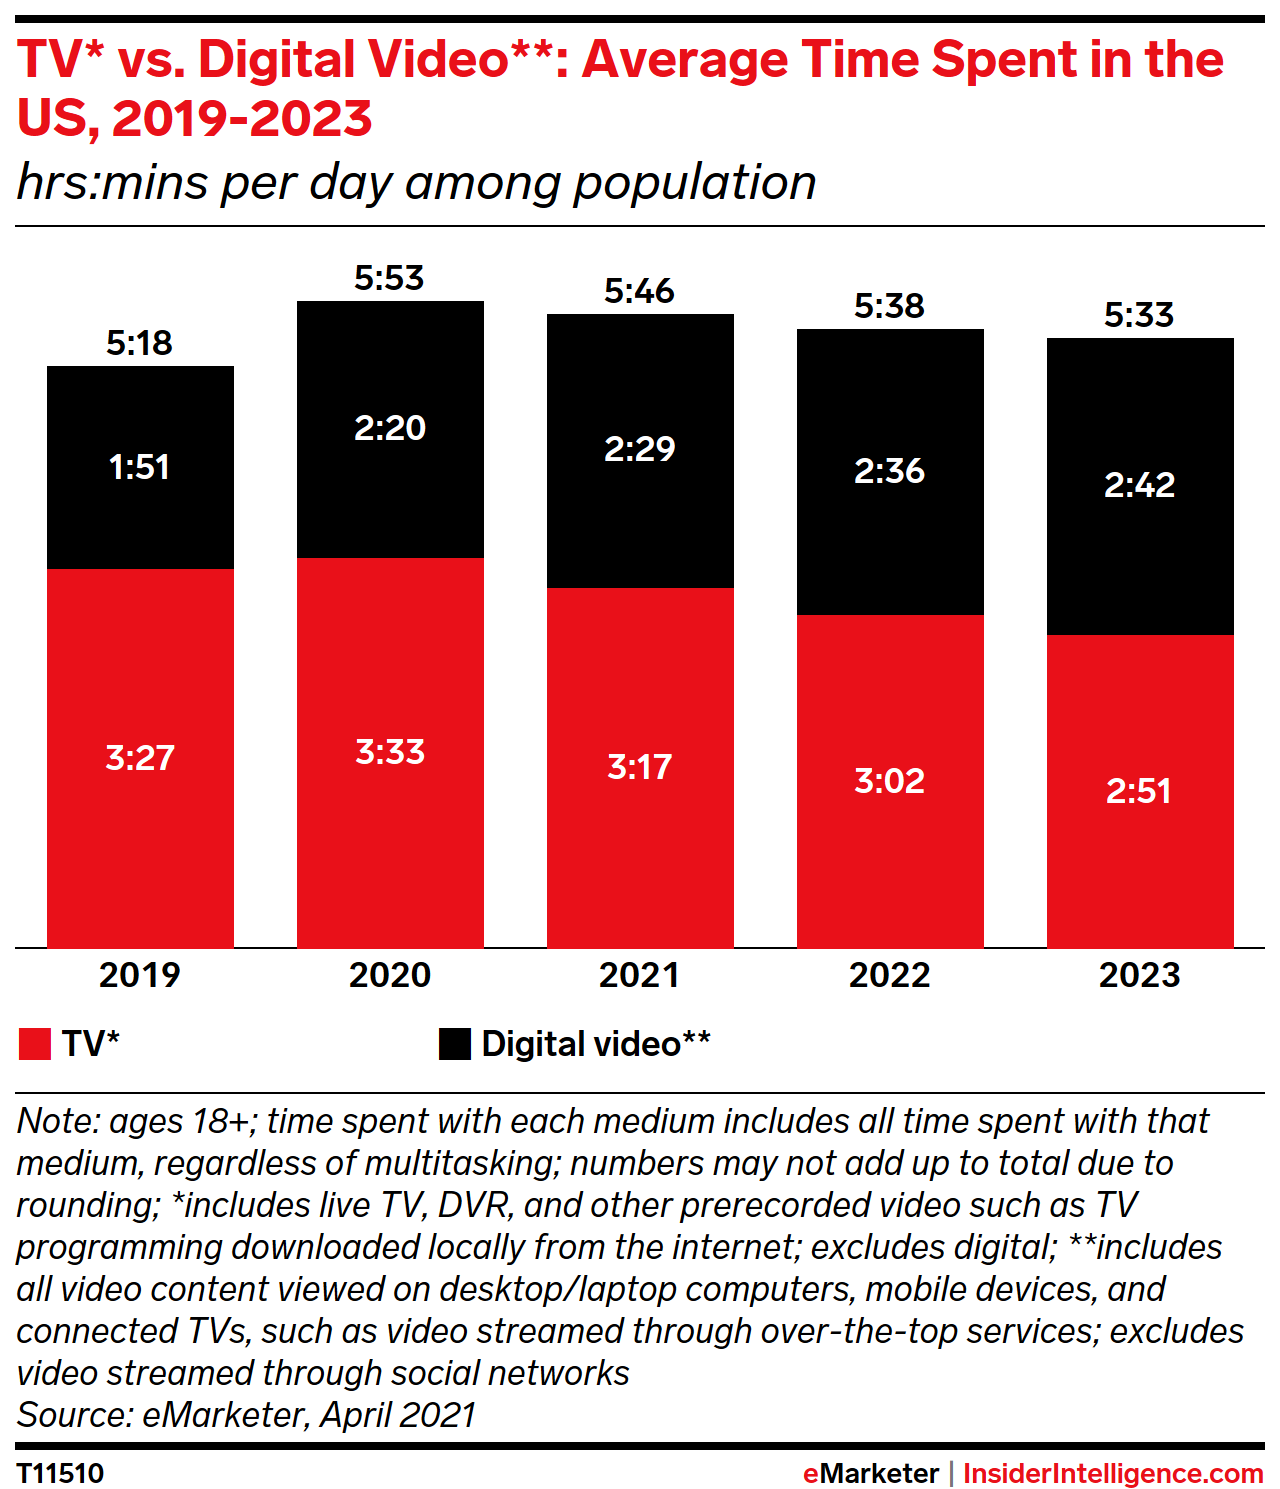 TV* vs. Digital Video**: Average Time Spent in the US, 2019-2023 (hrs:mins per day among population)